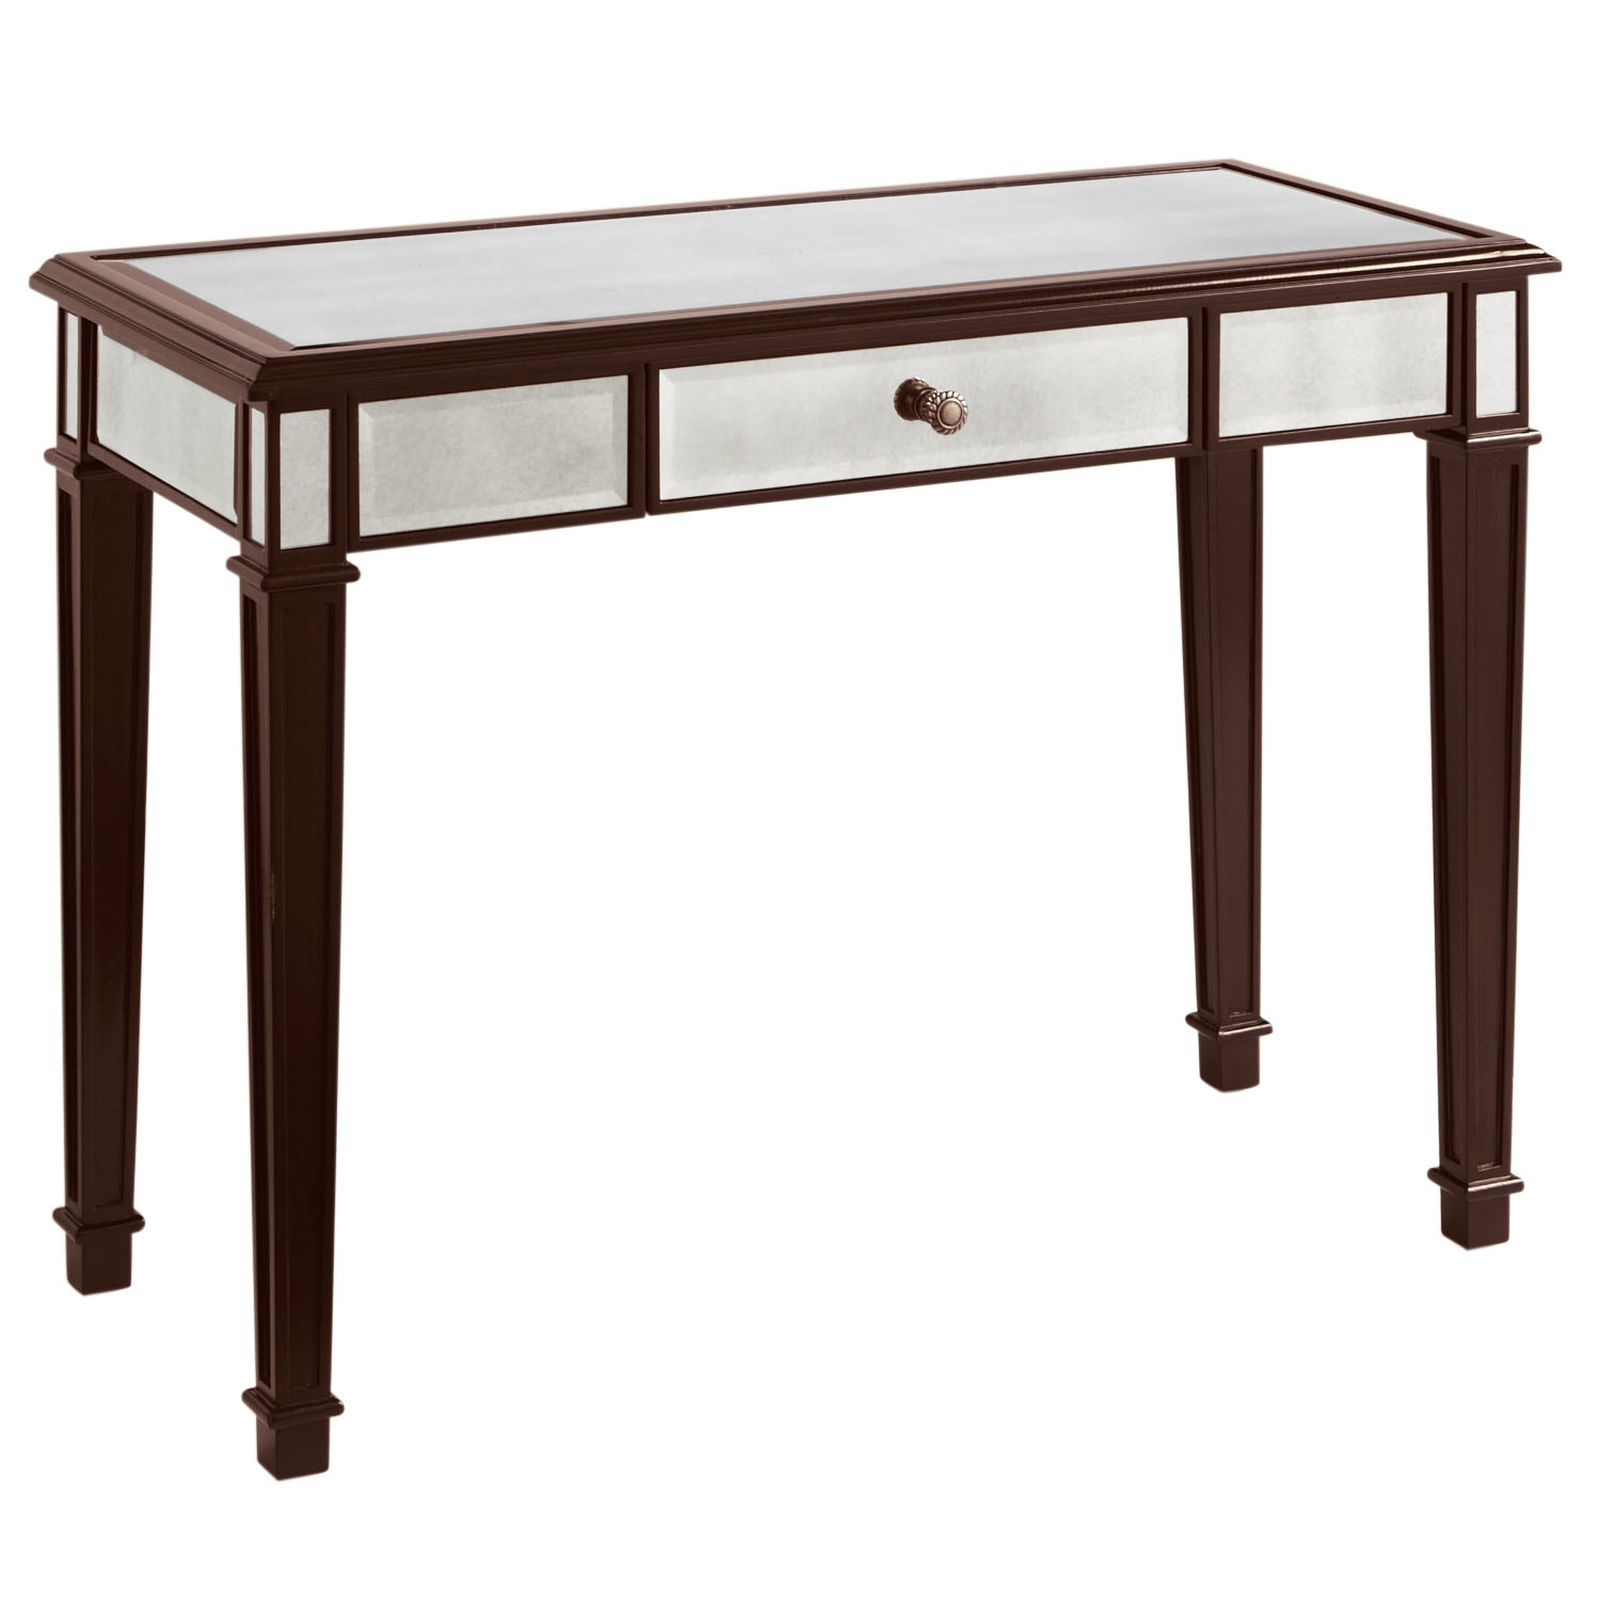 Enticing hayworth vanity mirrored vanity and ikea vanity also ikea rug hayworth rug ideas